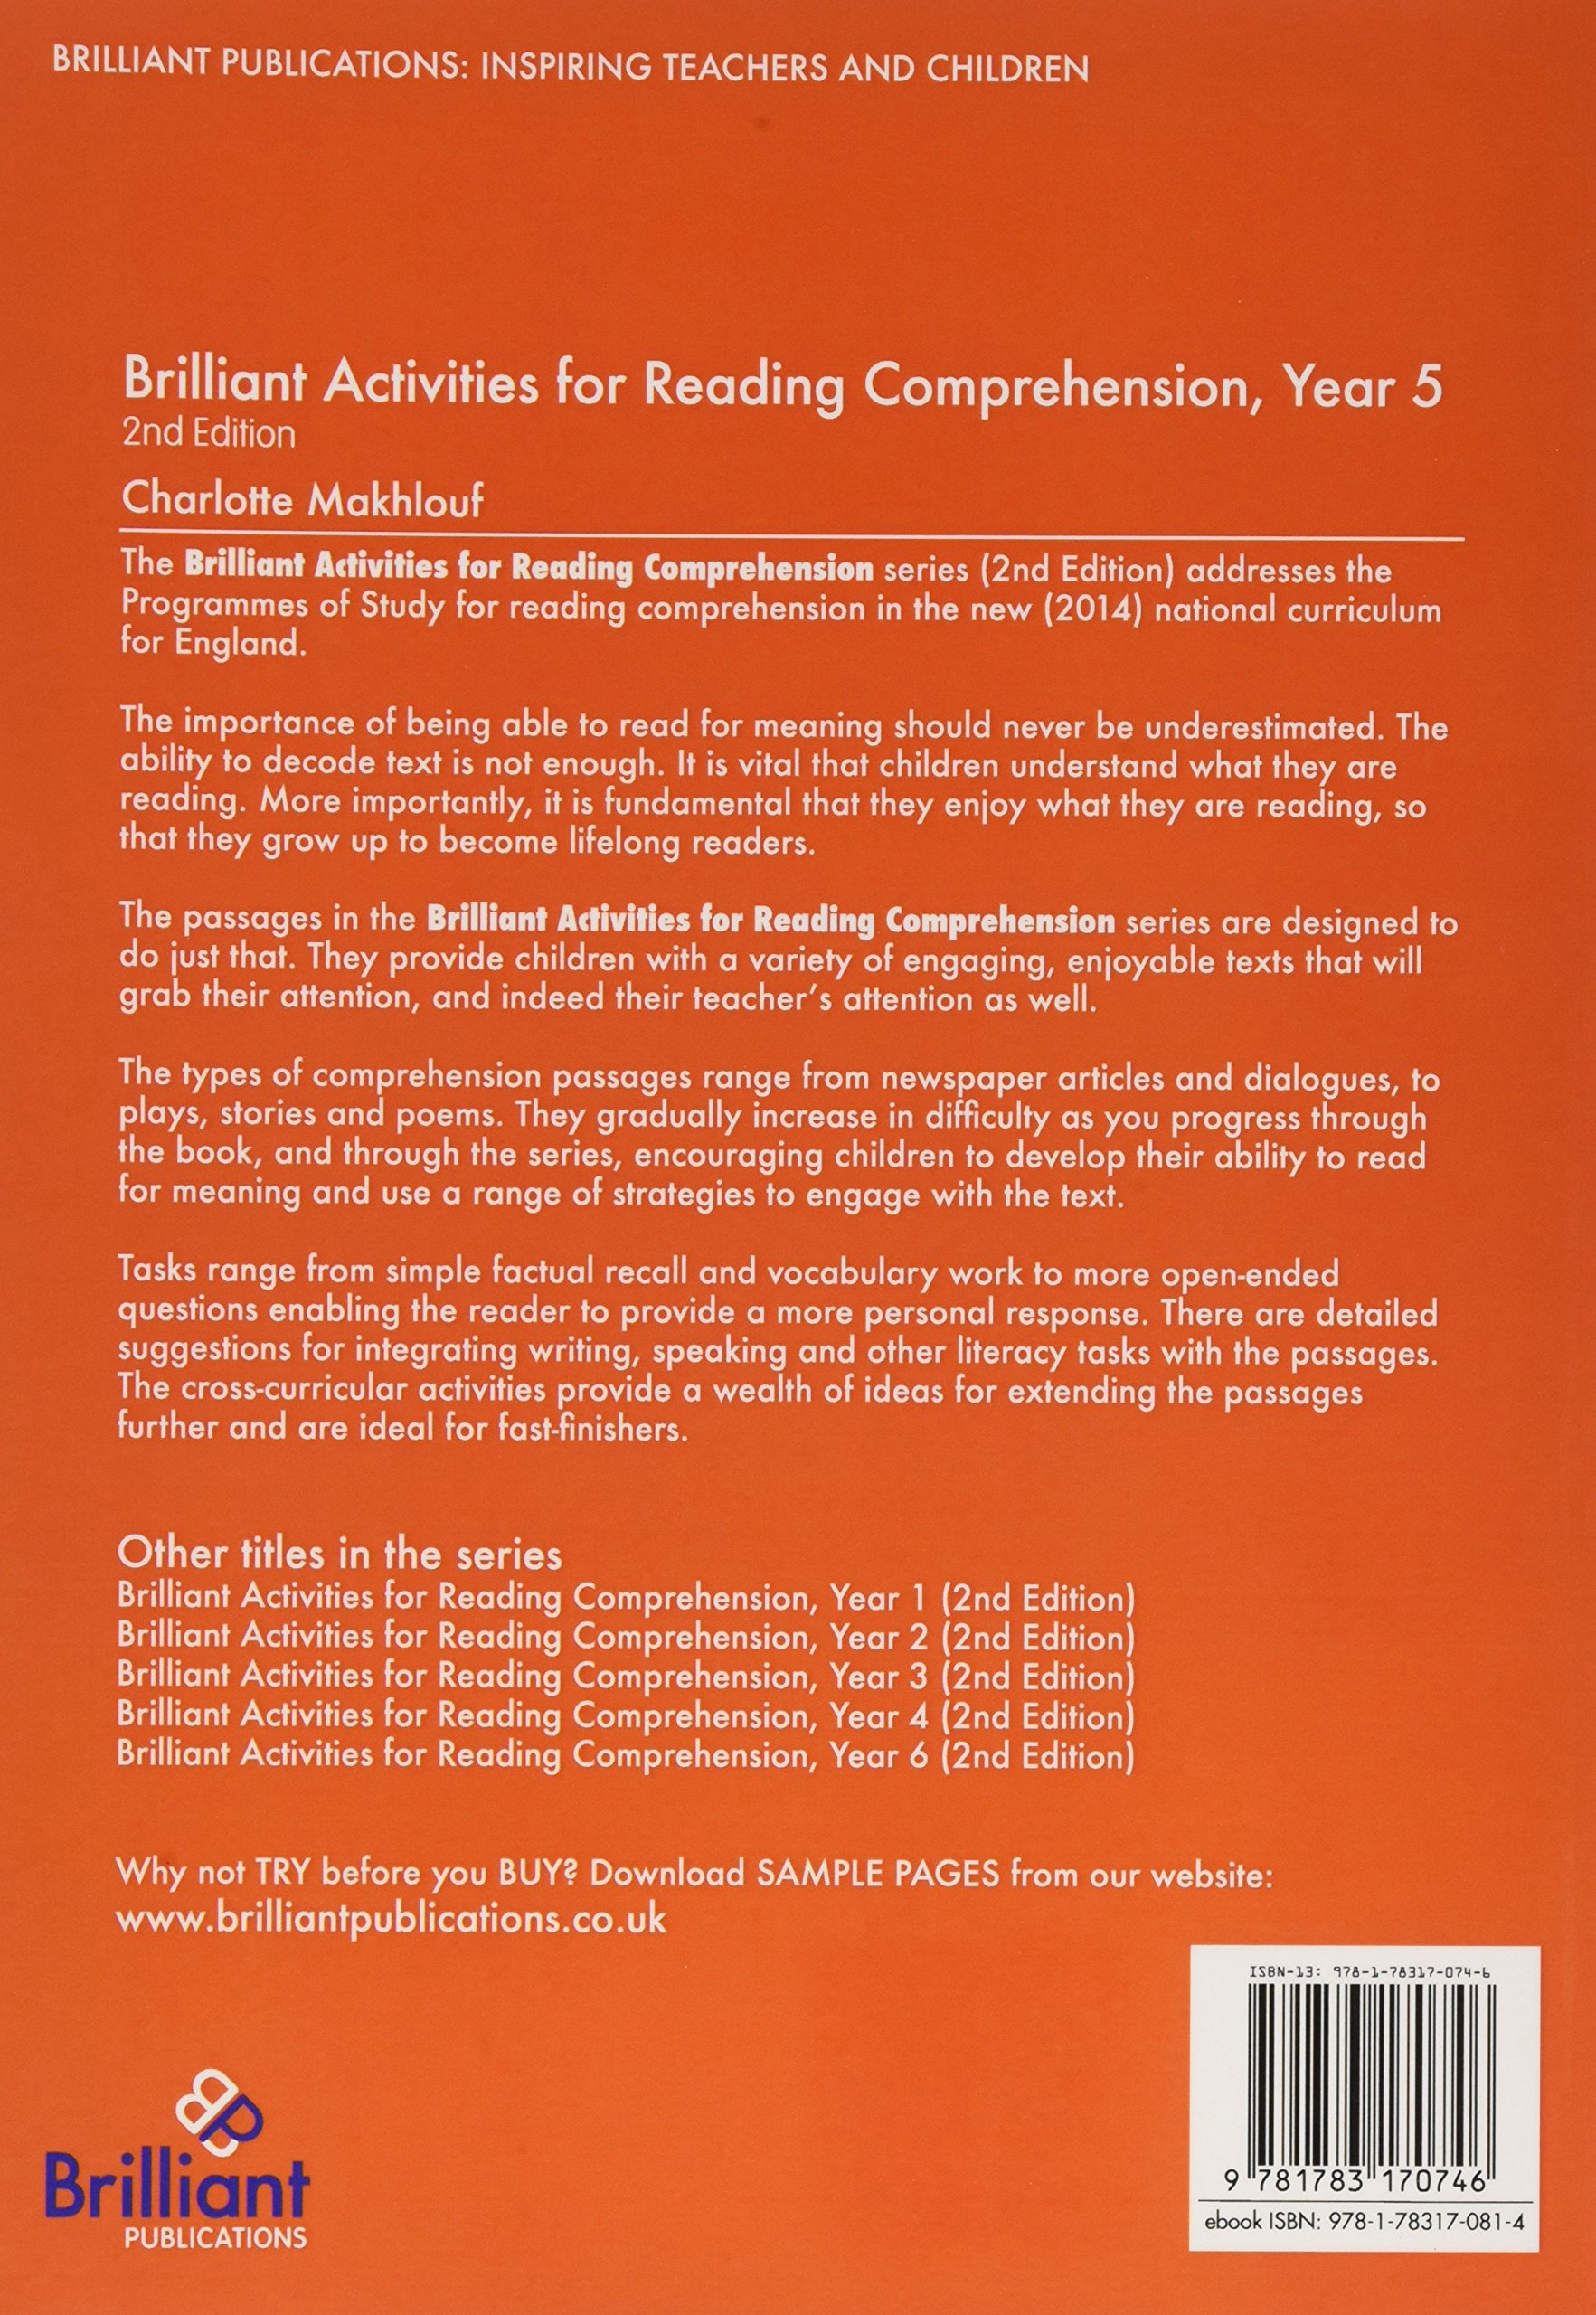 Worksheets Cross-curricular Reading Comprehension Worksheets brilliant activities for reading comprehension year 5 2nd edition amazon co uk charlotte makhlouf books